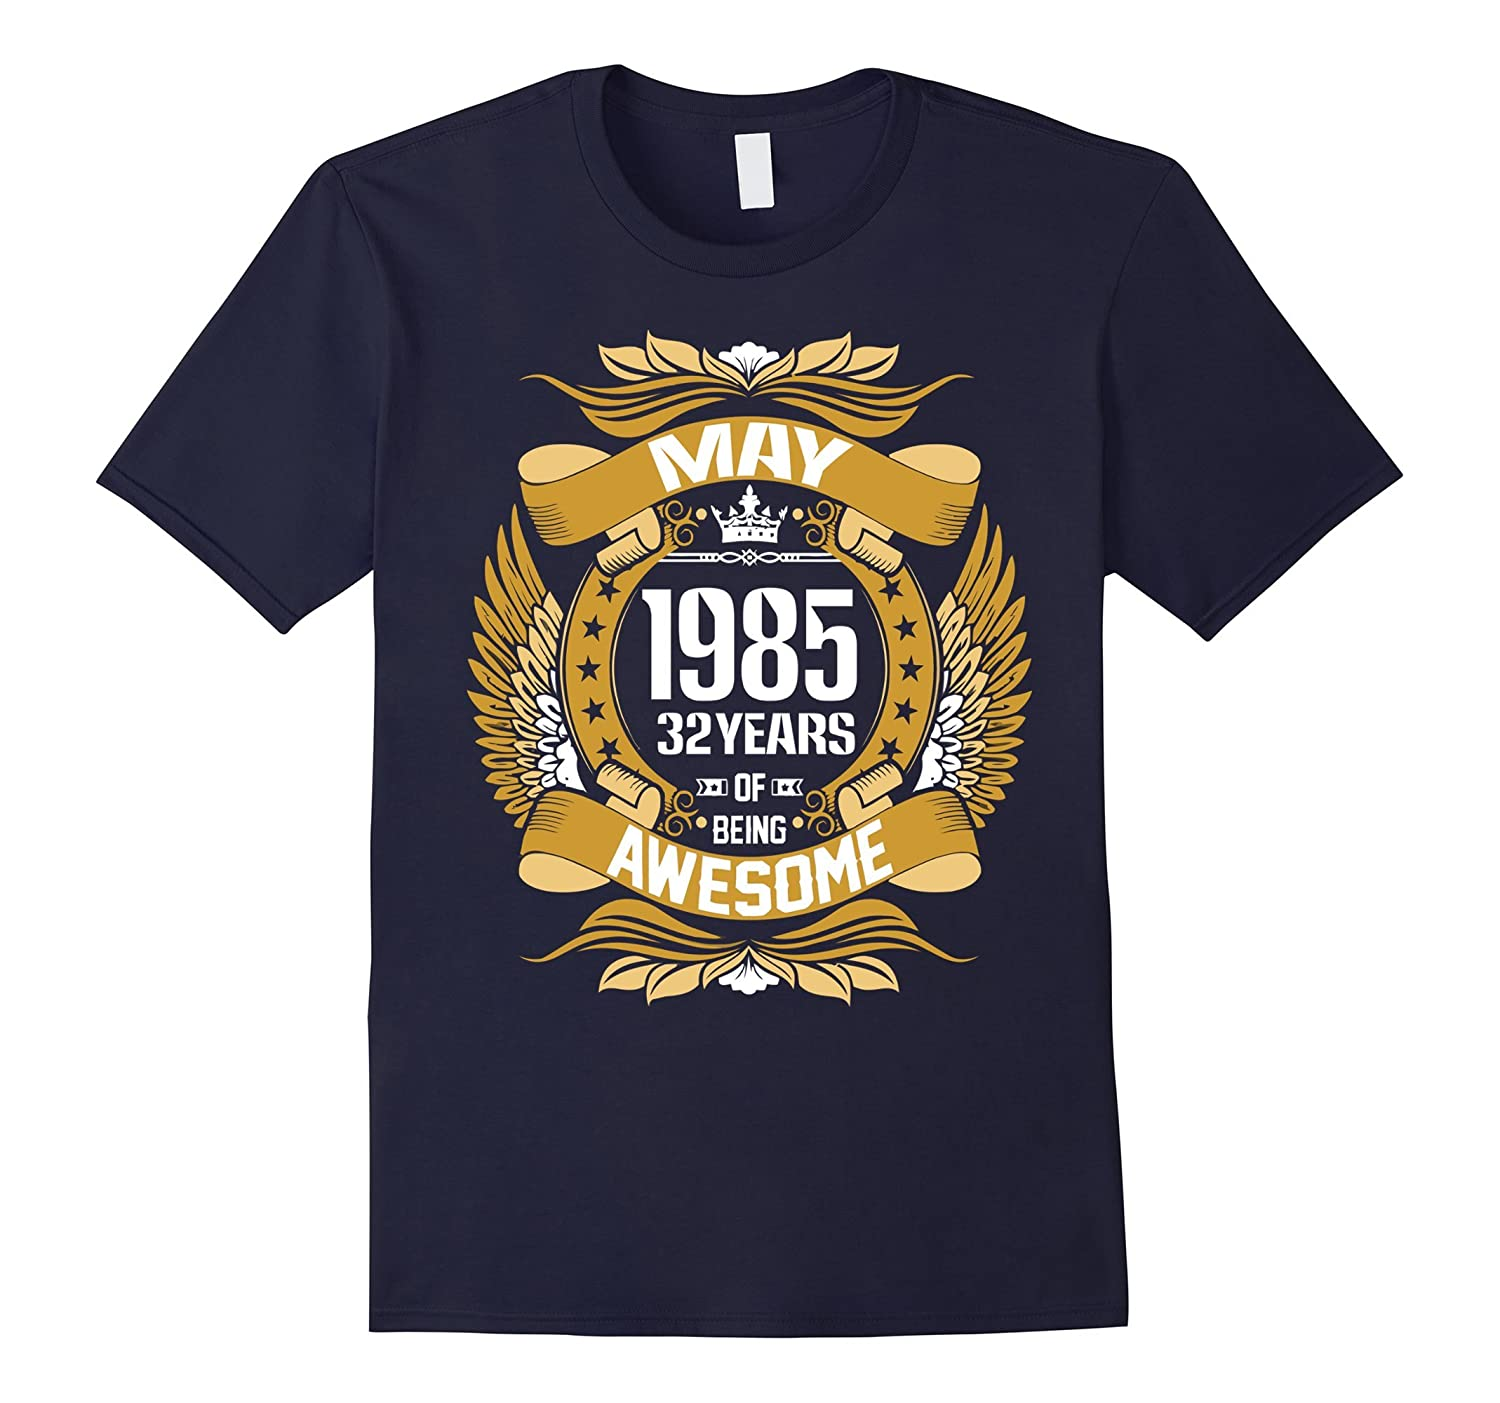 May 1985 32 years of being awesome t shirt-CD